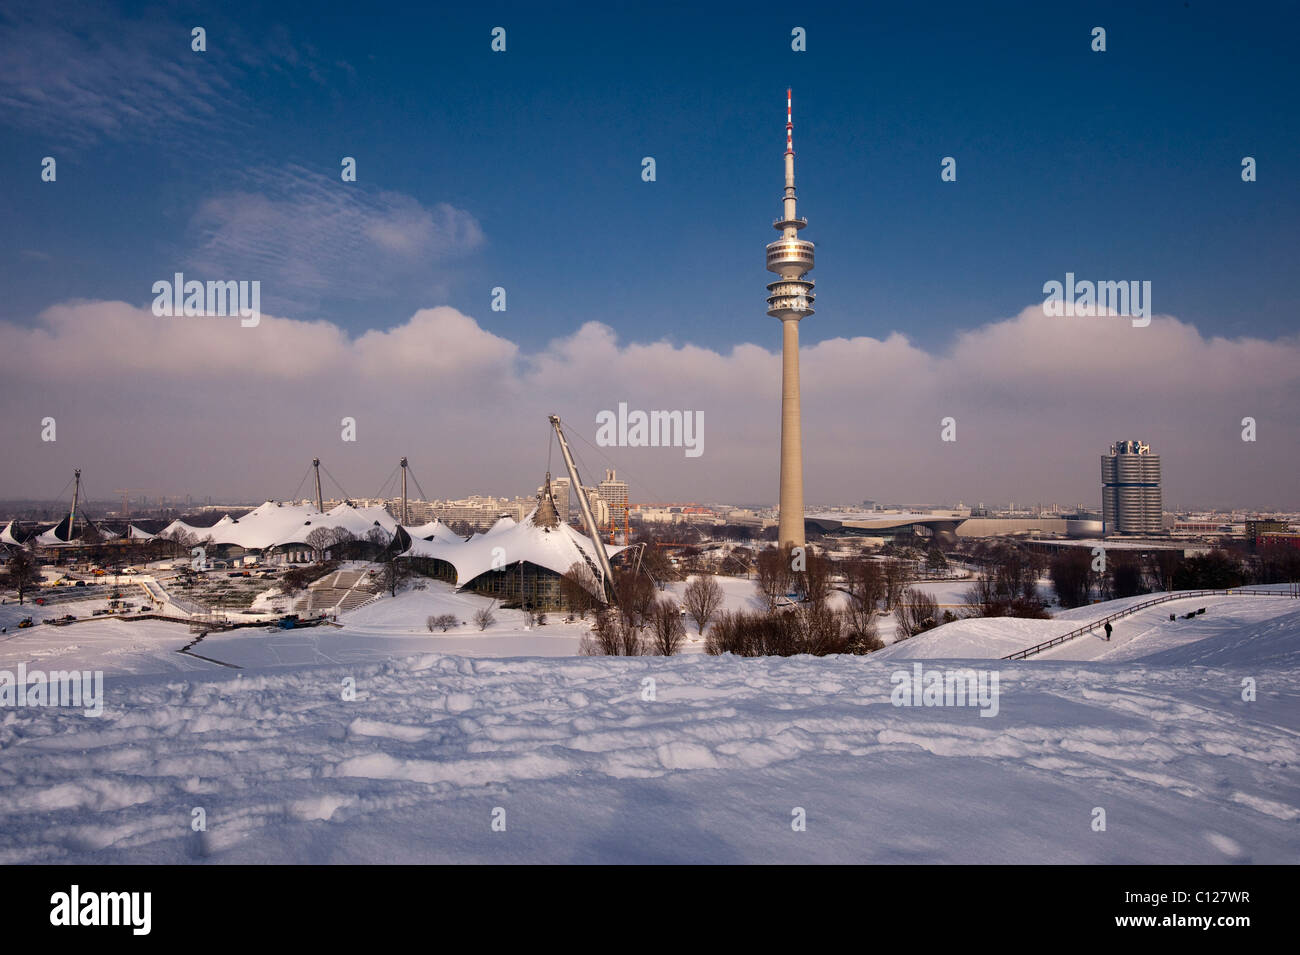 Olympic Tower and BMW Headquarters, Olympic Park, Munich, Bavaria, Germany, Europe - Stock Image